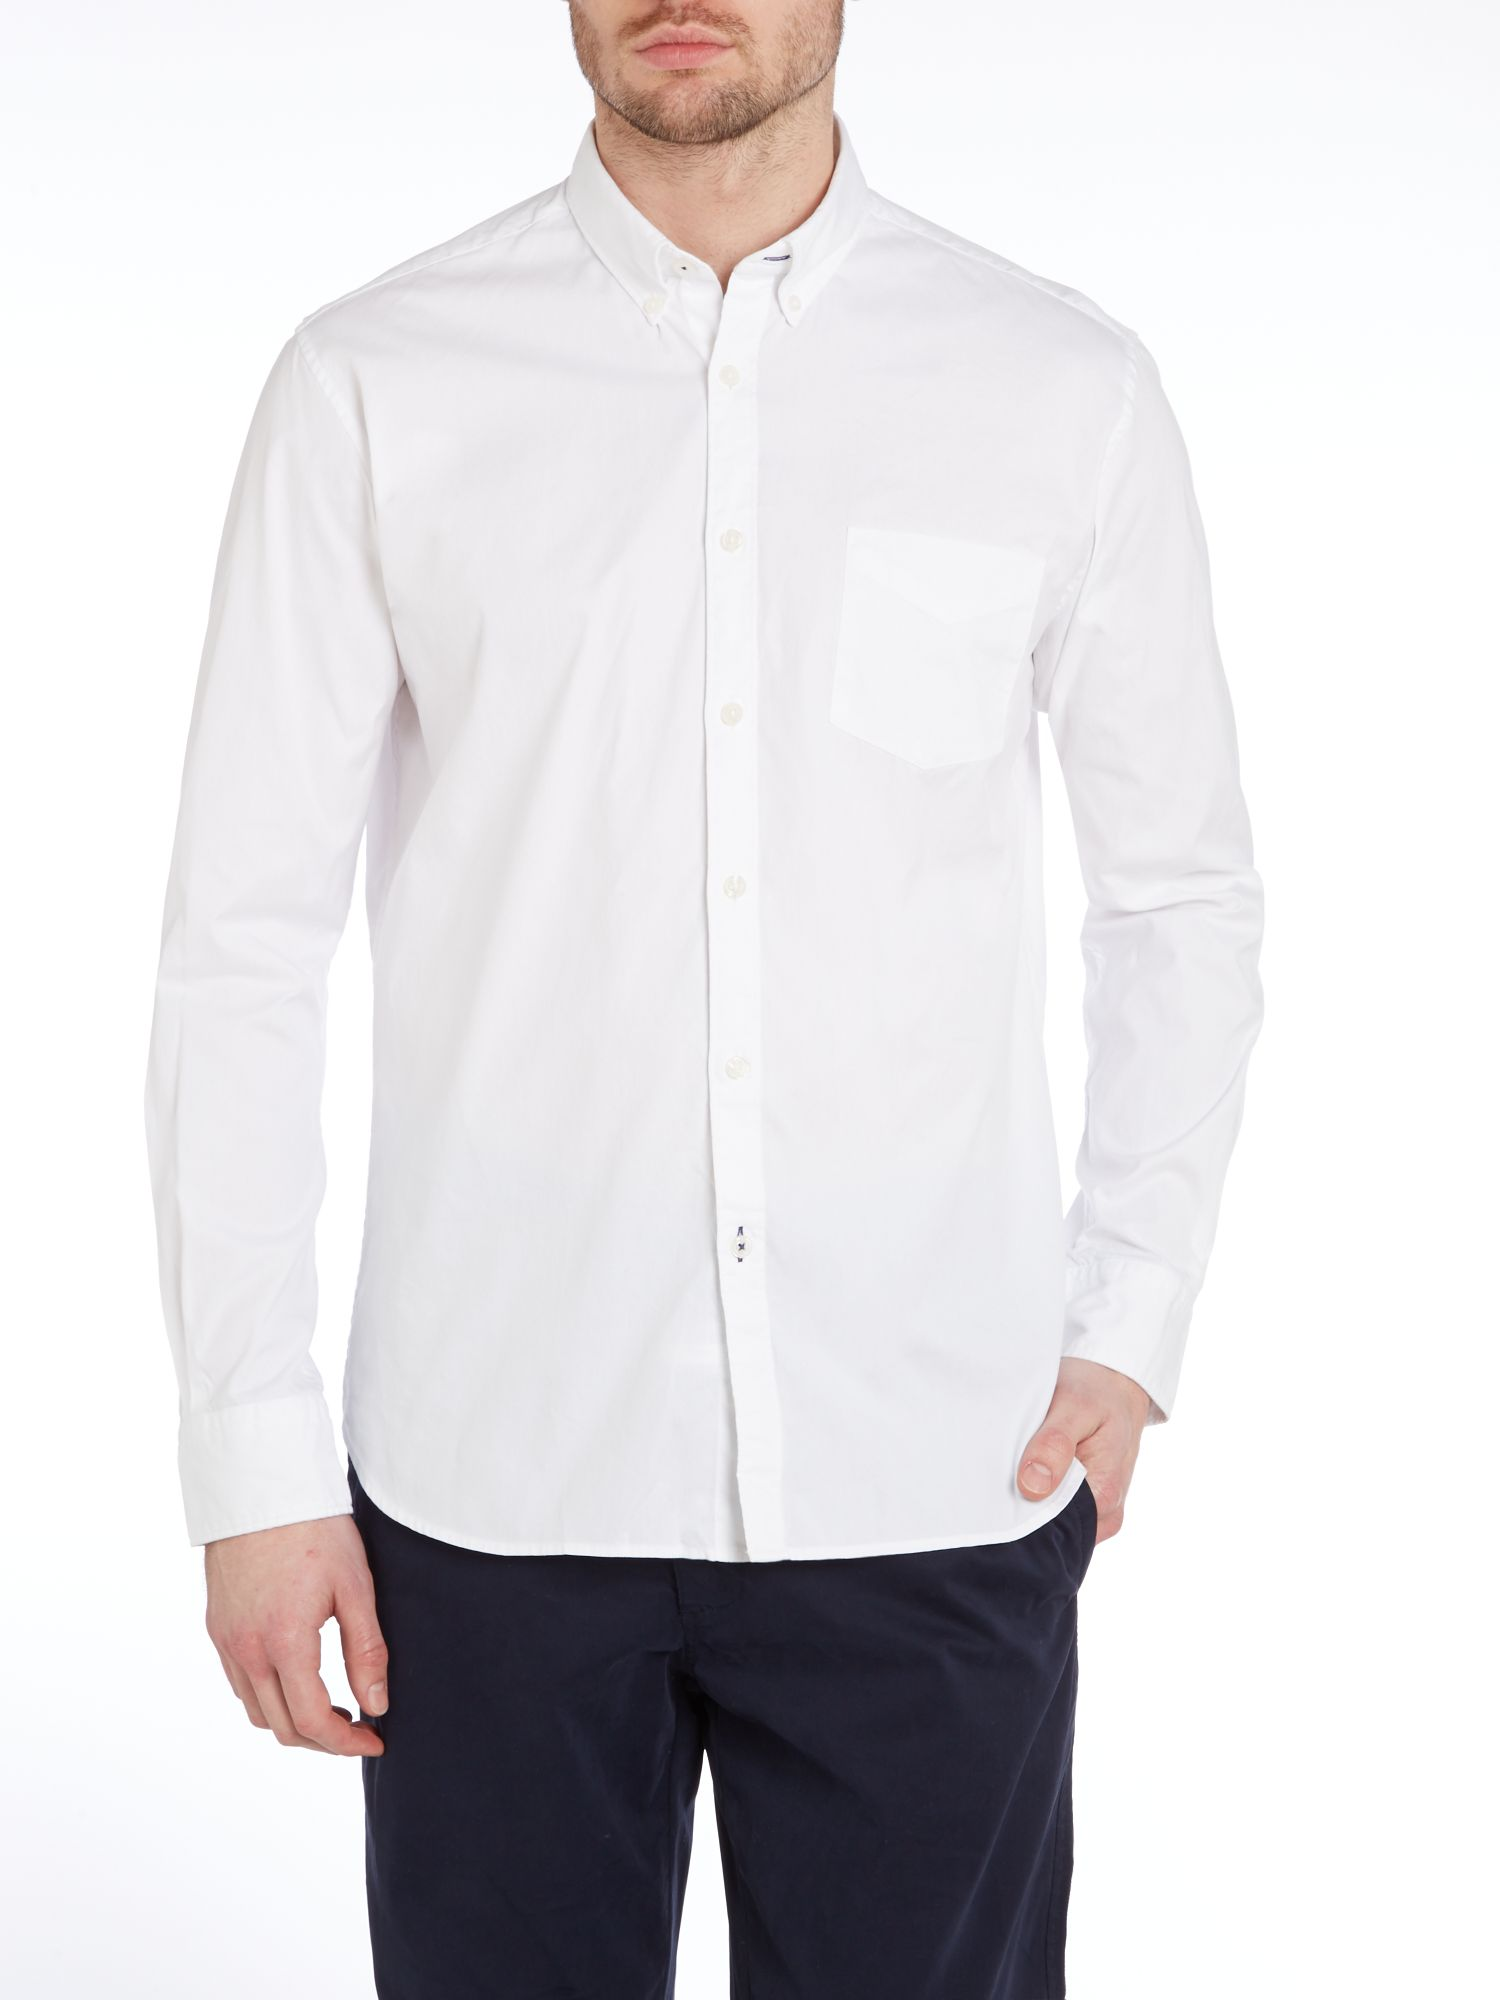 Oxford casual long sleeve shirt